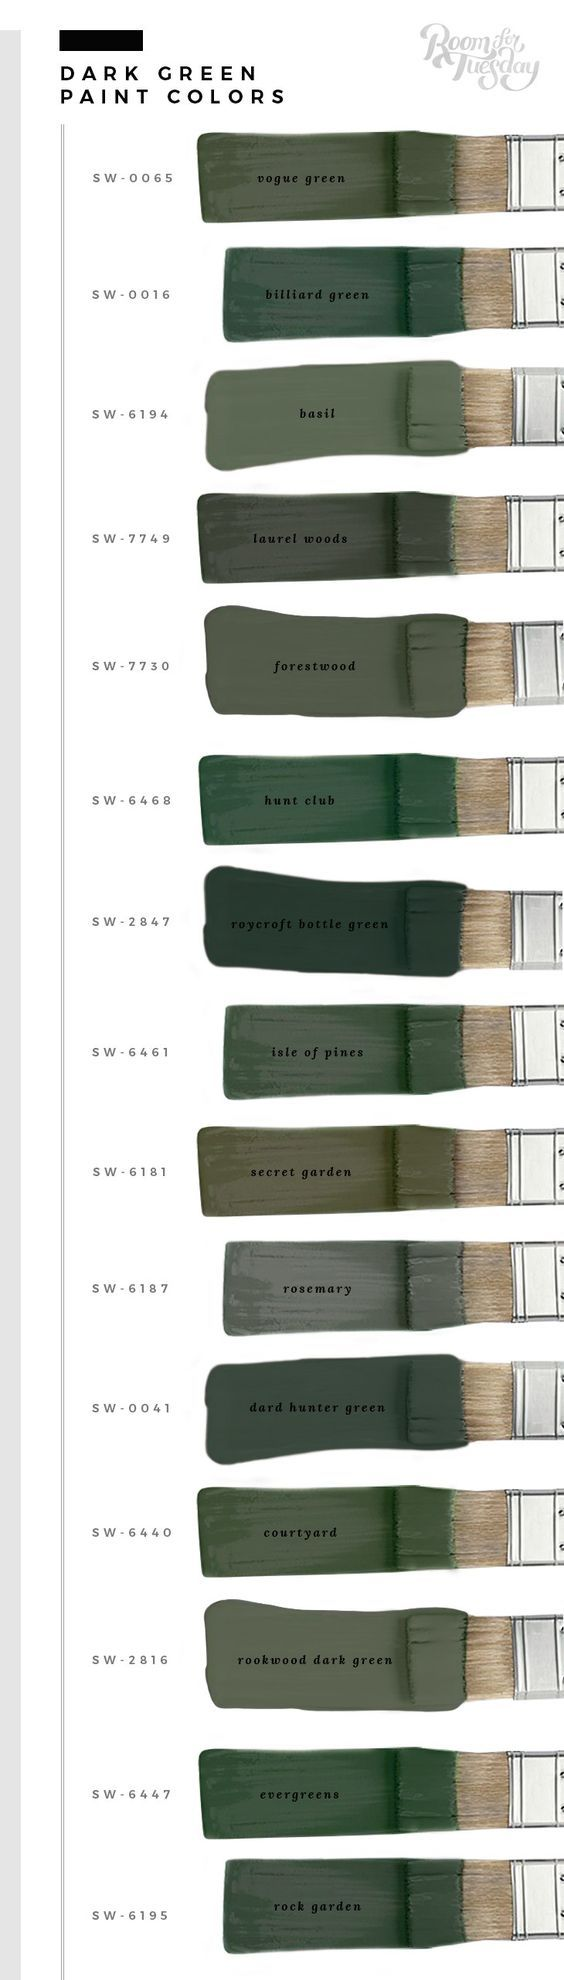 My Favorite Green Paint Colors #remodelingorroomdesign